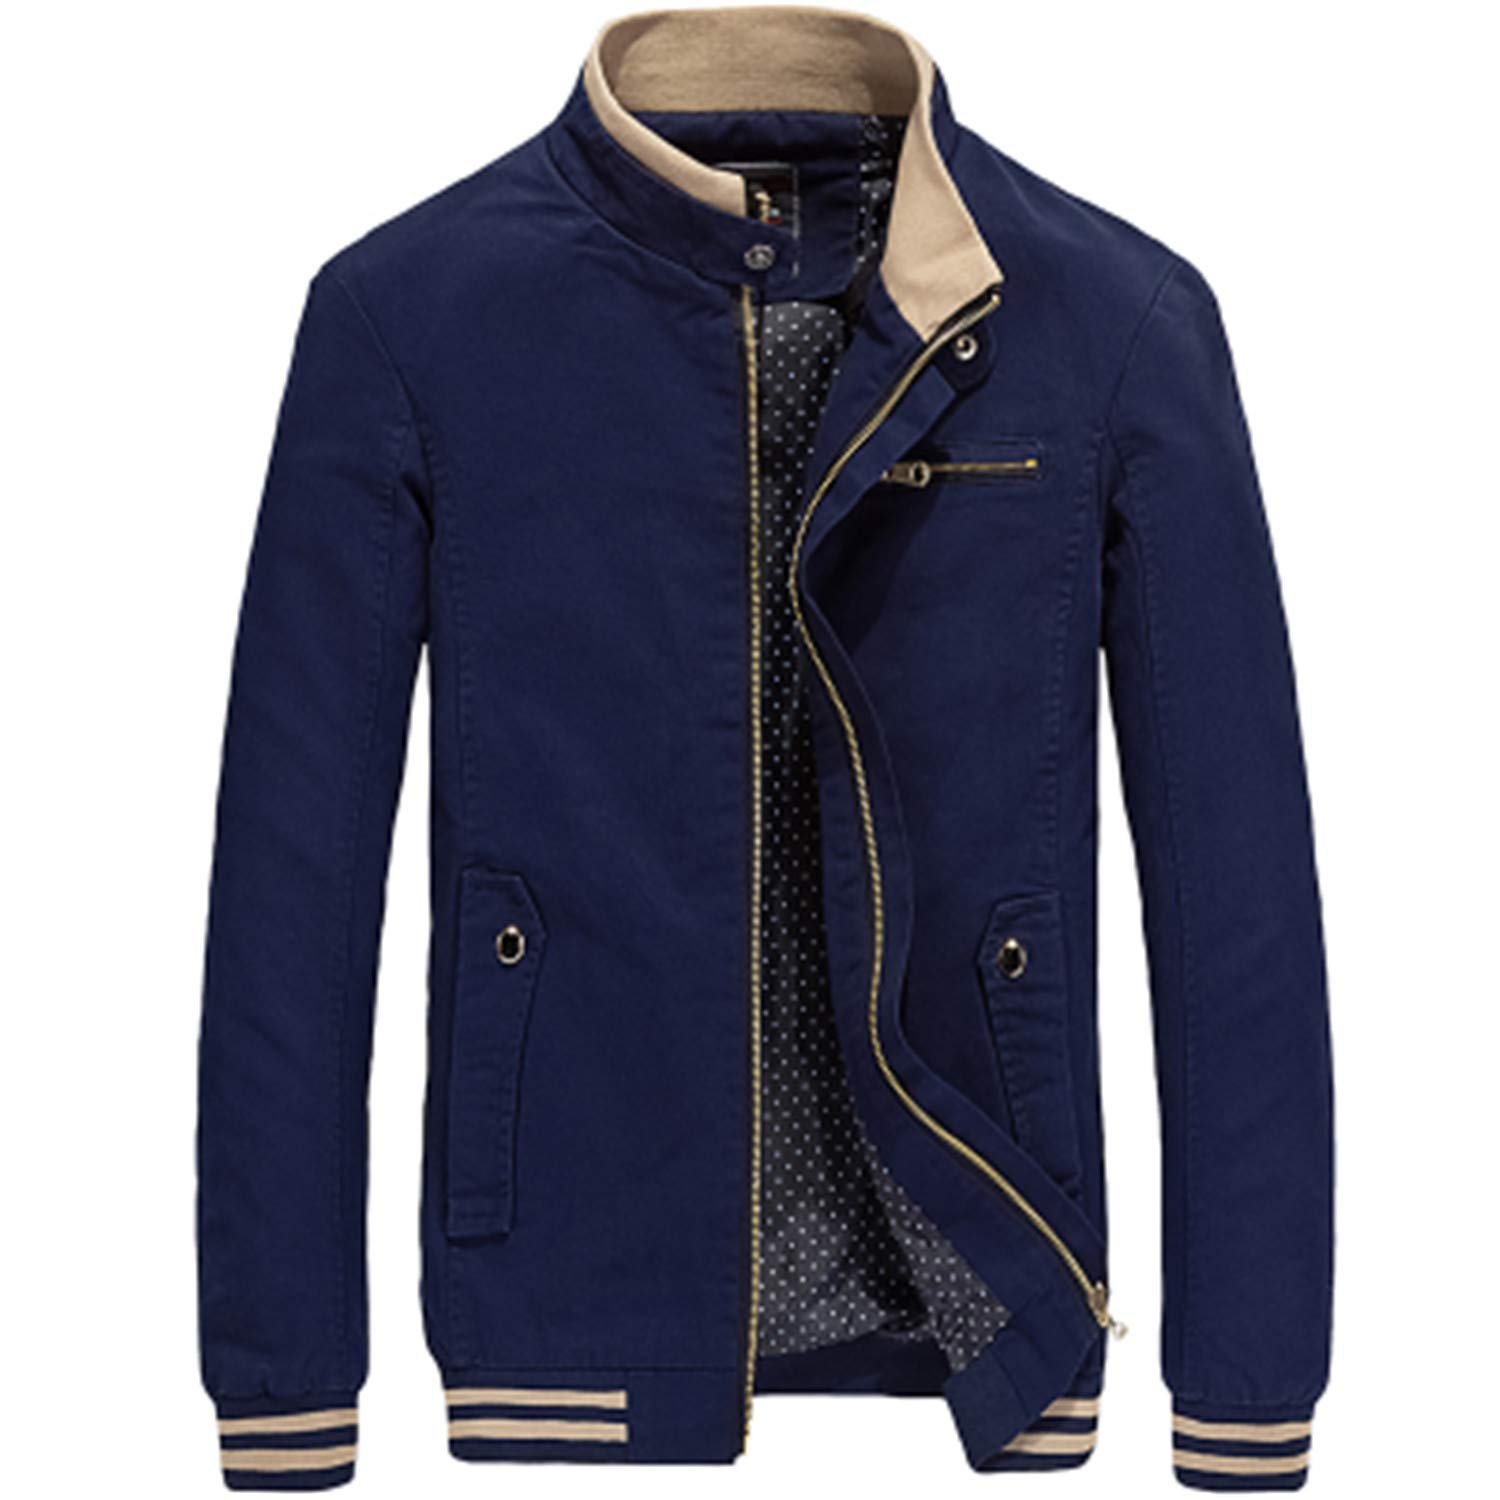 Amazon.com: 100% Cotton Casual Men Jackets Coats Fashion ...